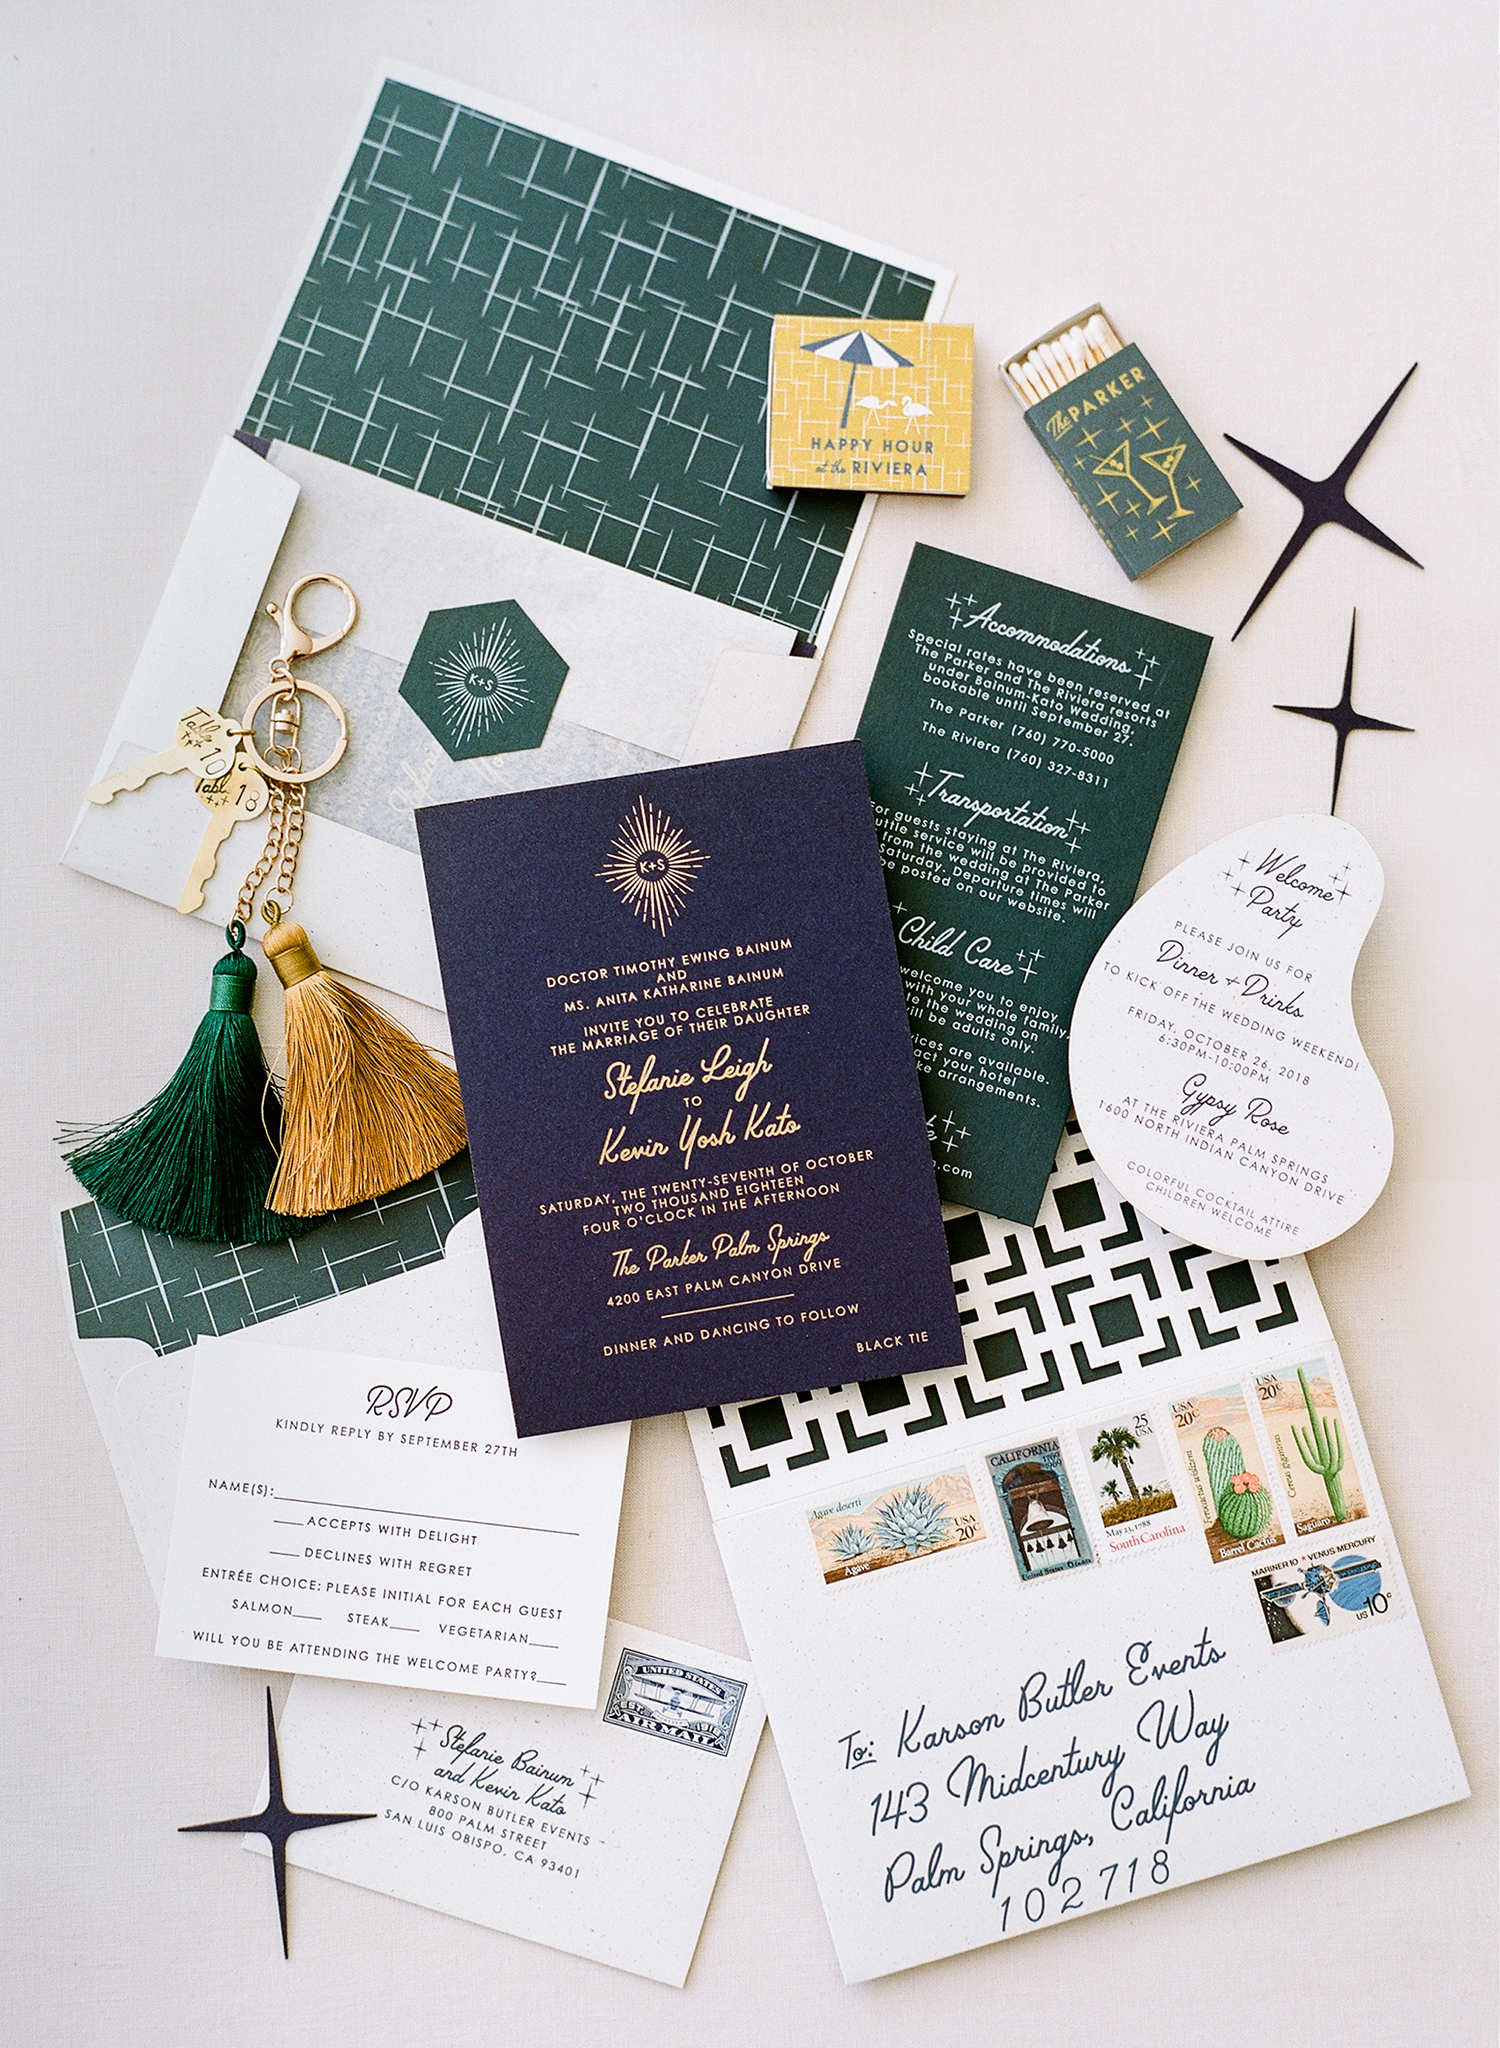 Is It Worth the Extra Cost to Have Our Stationer Assemble Our Wedding Invitations?